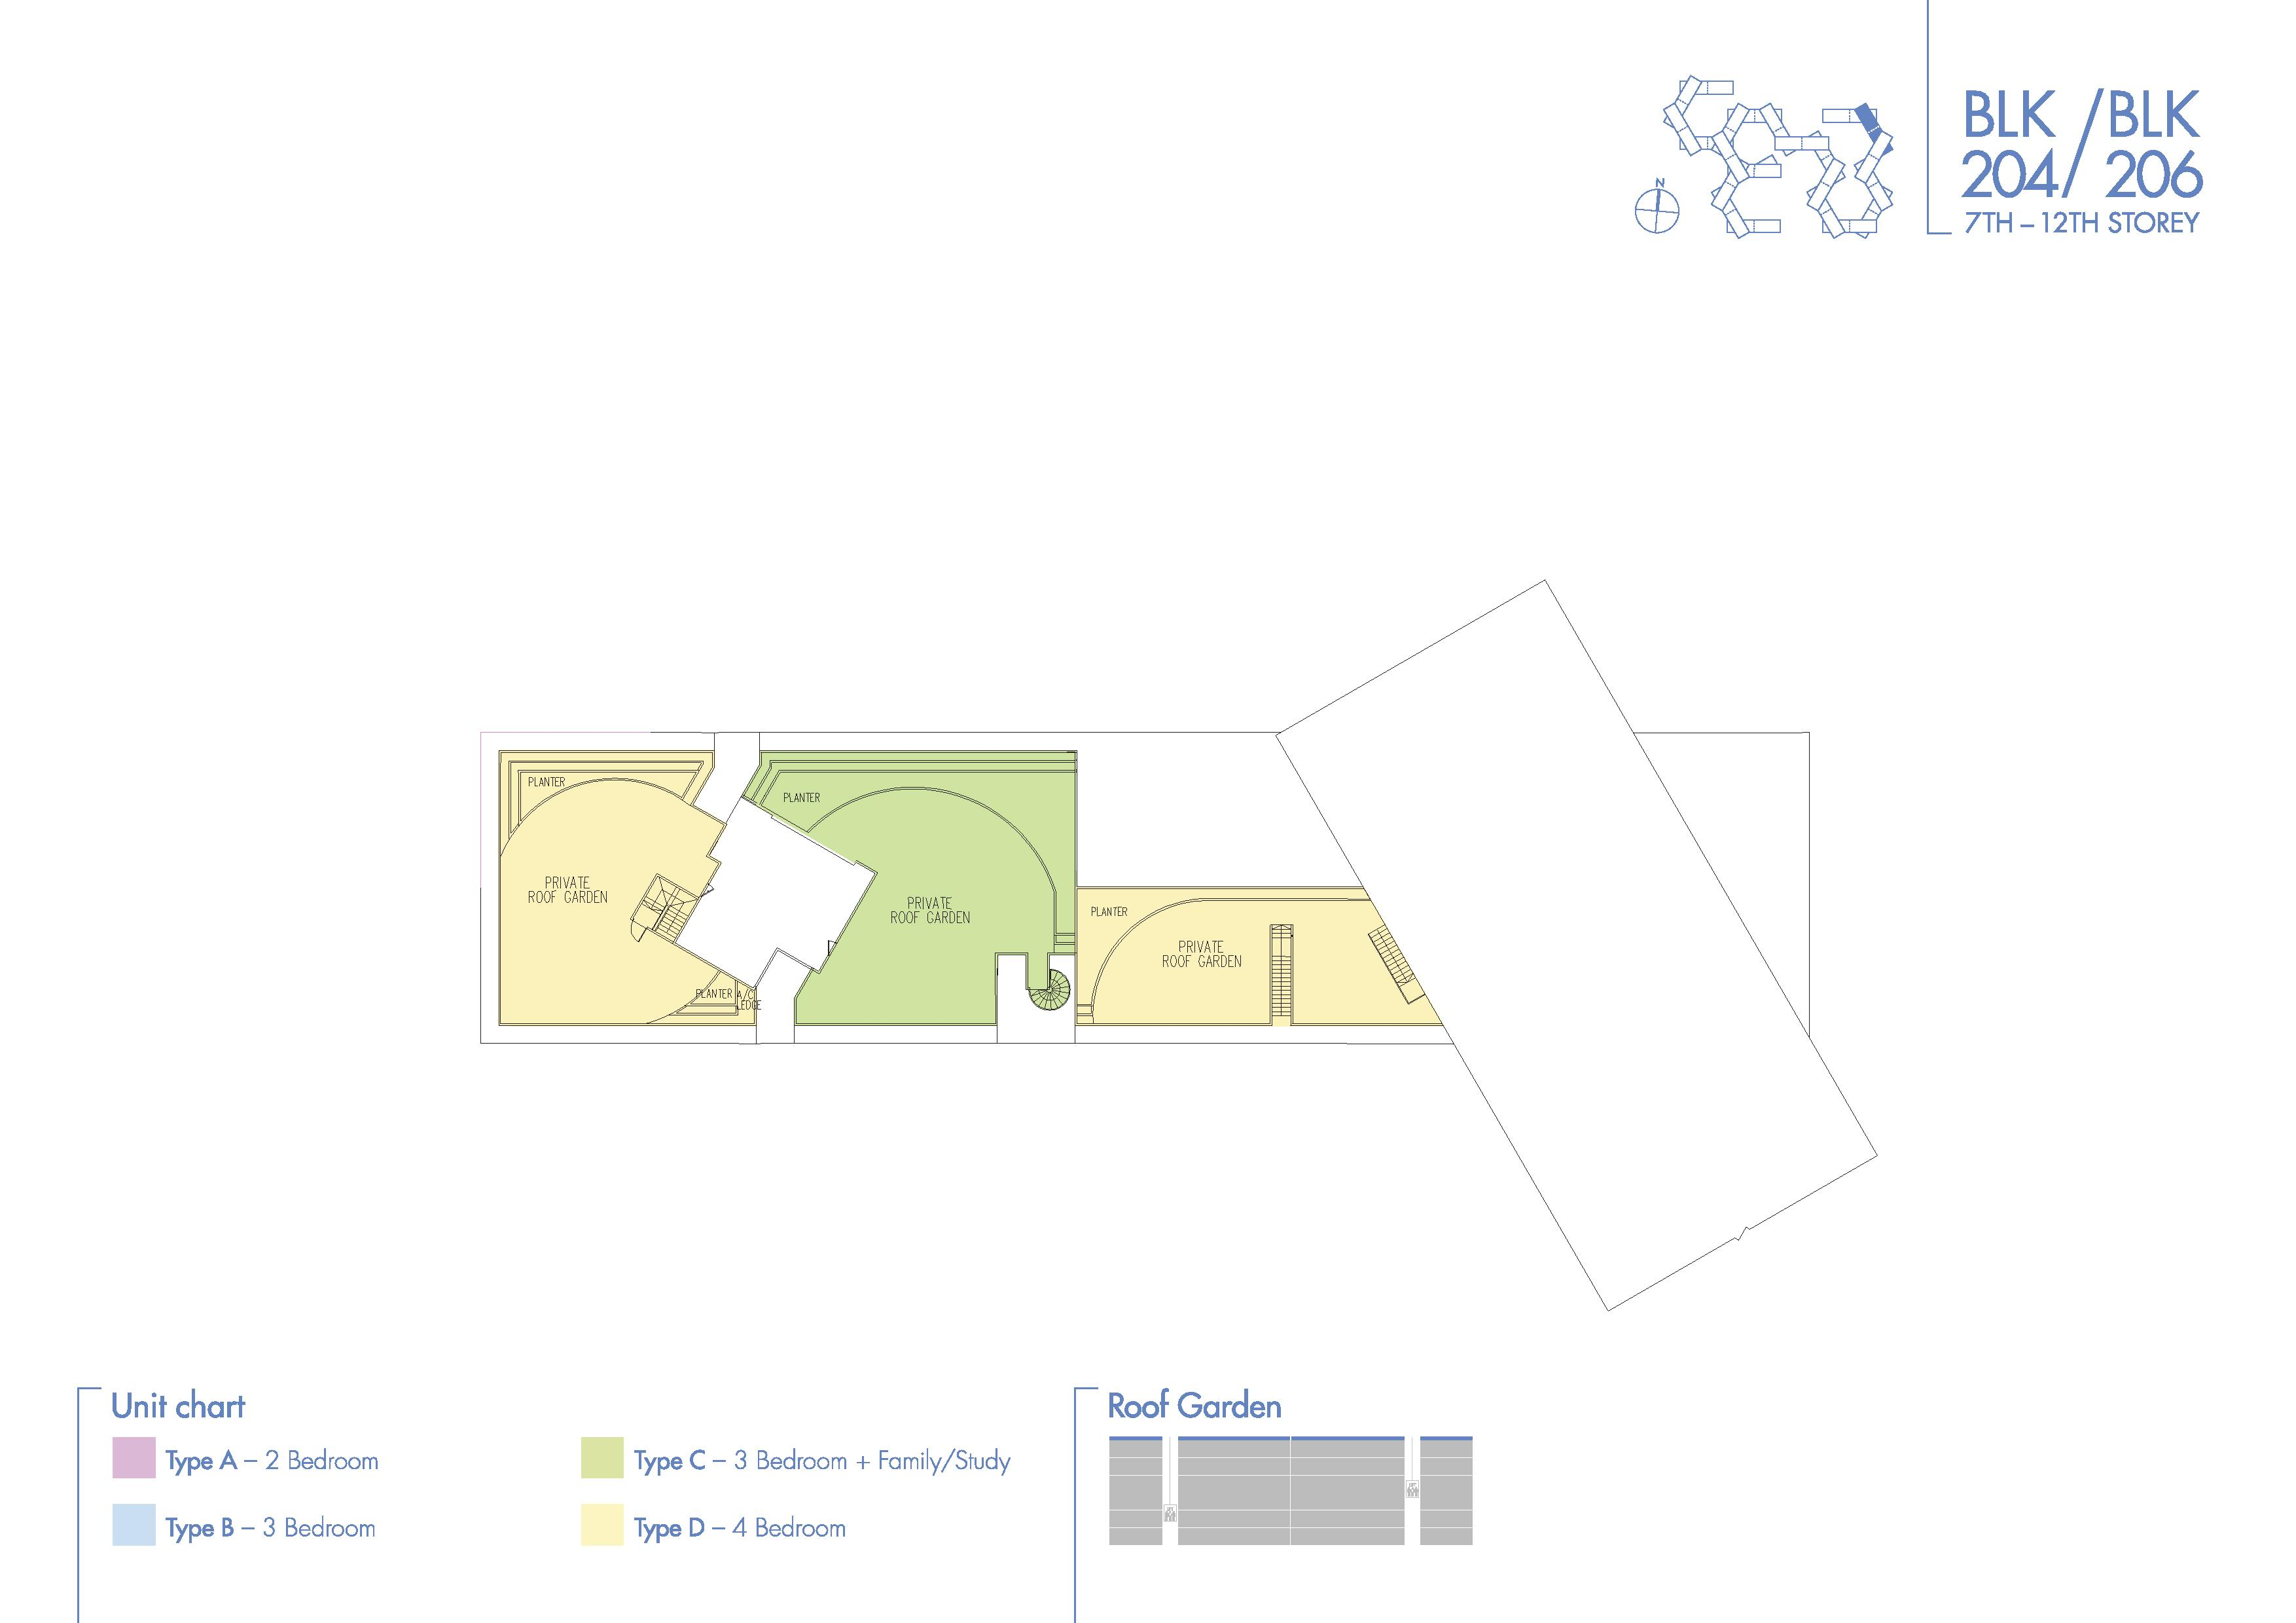 Super Level 2 Block 204/206 Roof Garden Floor Plans